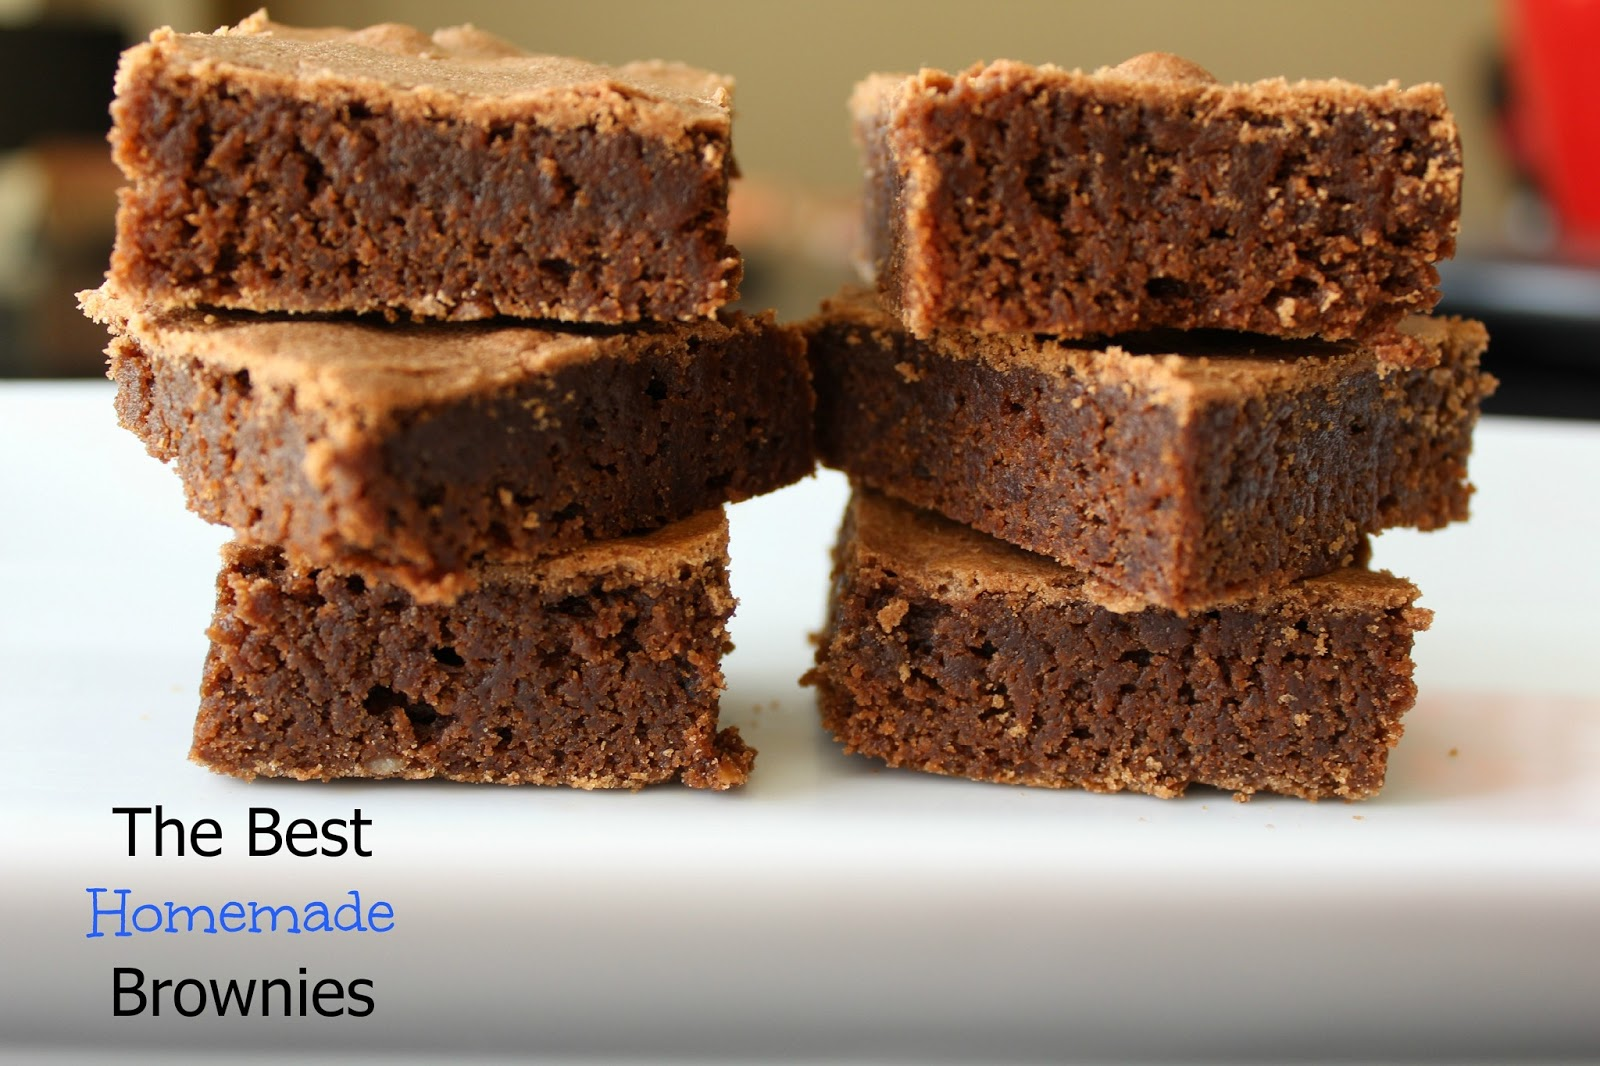 MOMMY ON DEMAND: The Best Homemade Brownies